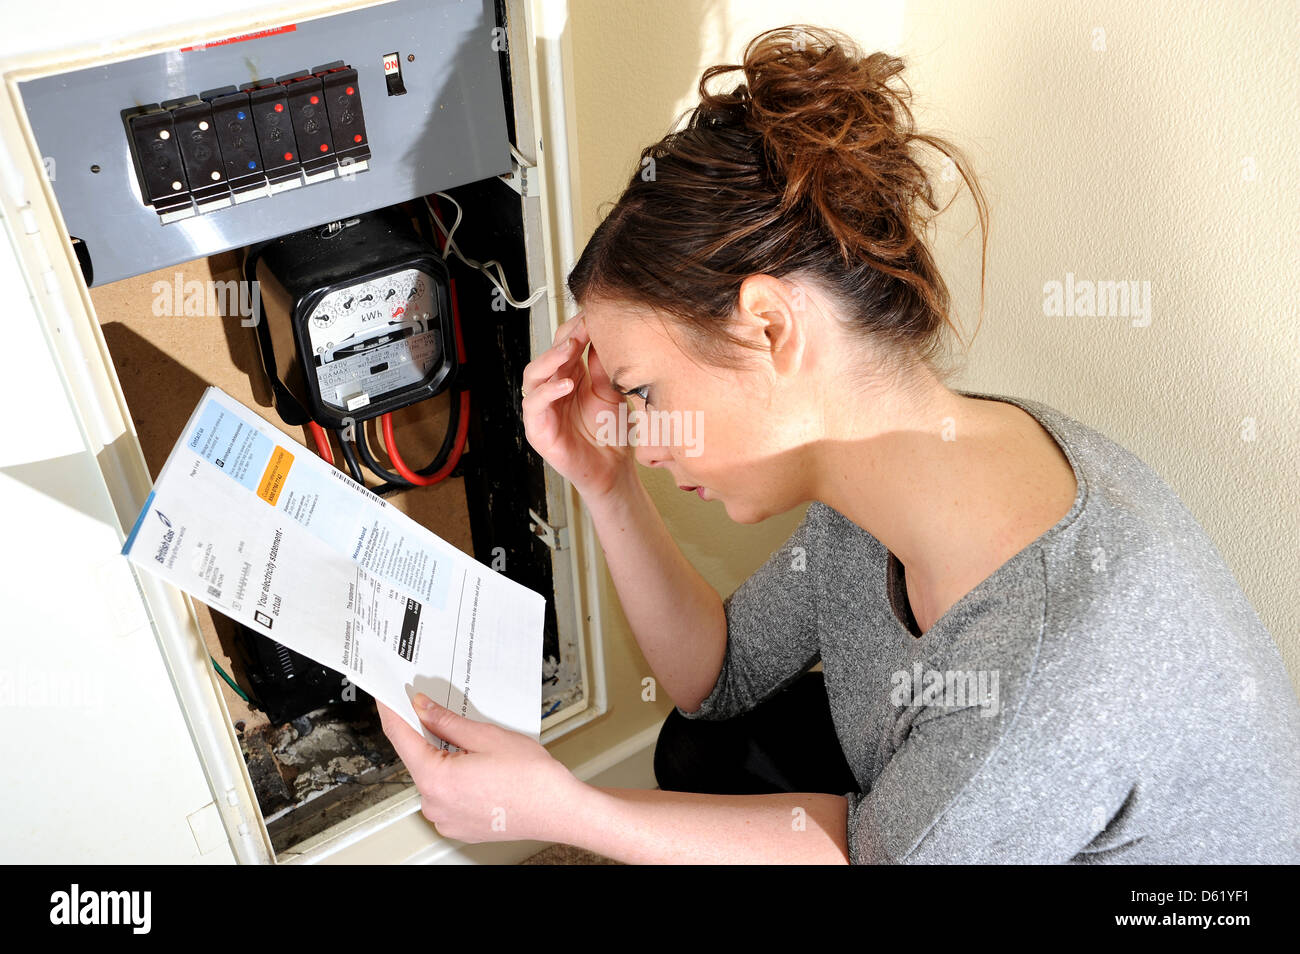 Young woman 20s attempting to read and understand her electricity meter reading and energy bill - Stock Image